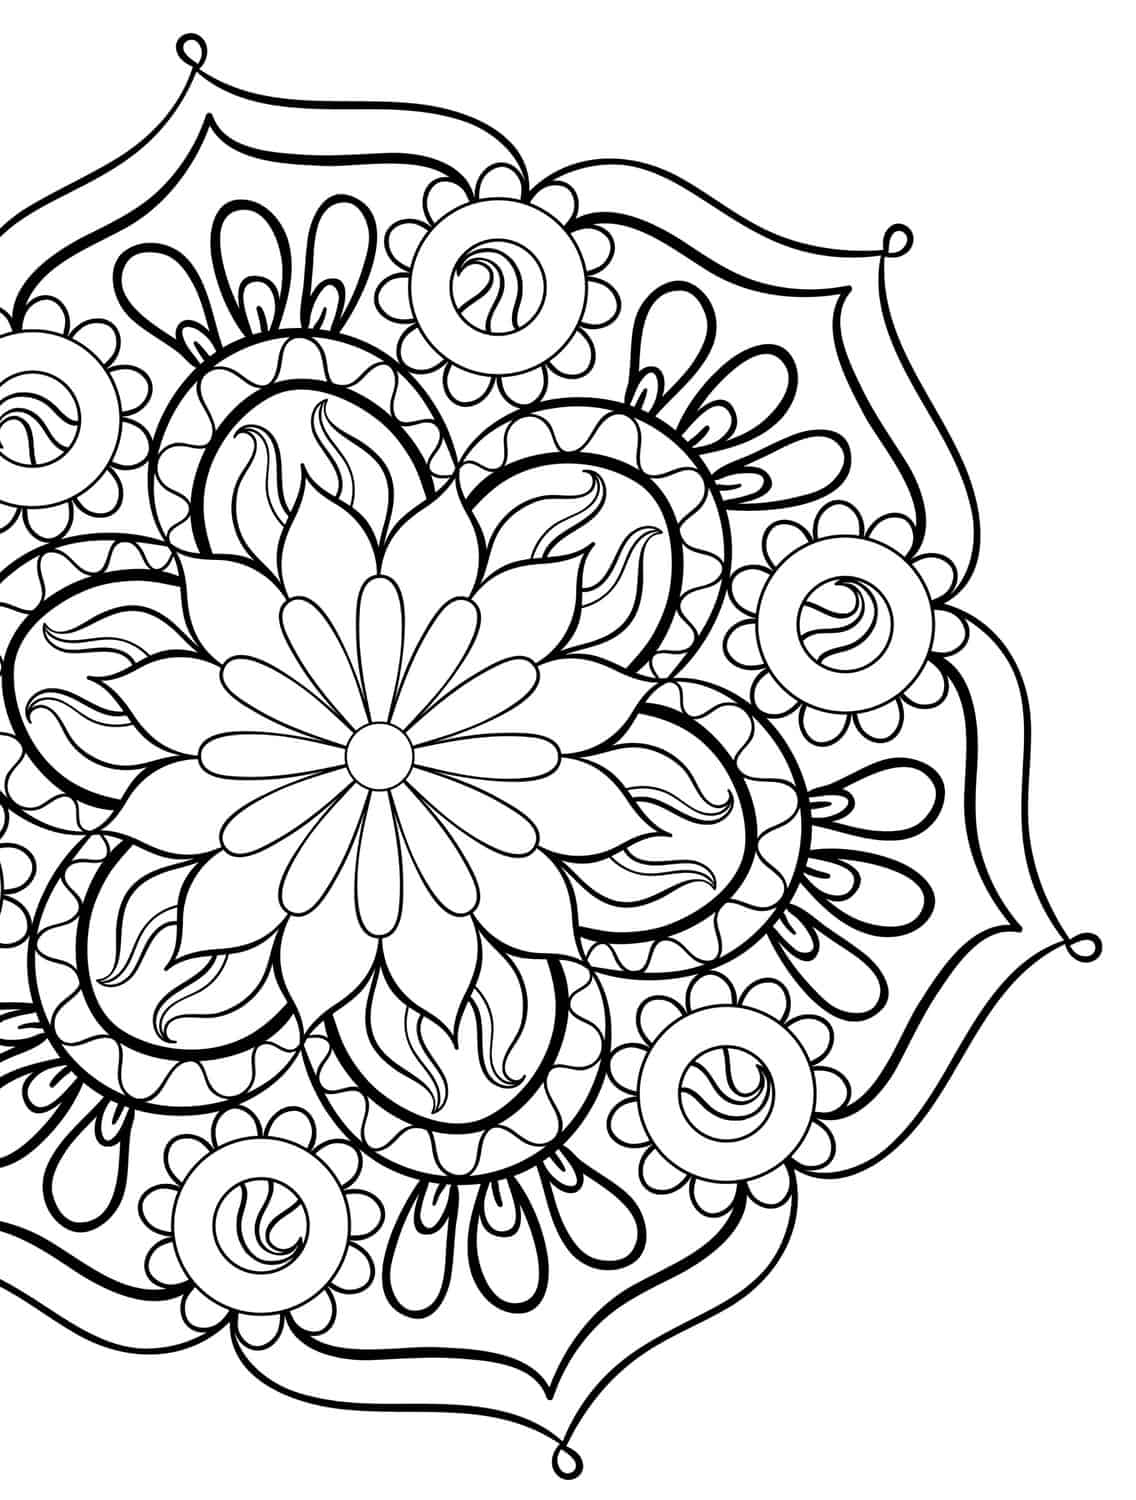 20 gorgeous free printable adult coloring pages page 2 for Mandala coloring pages printable free